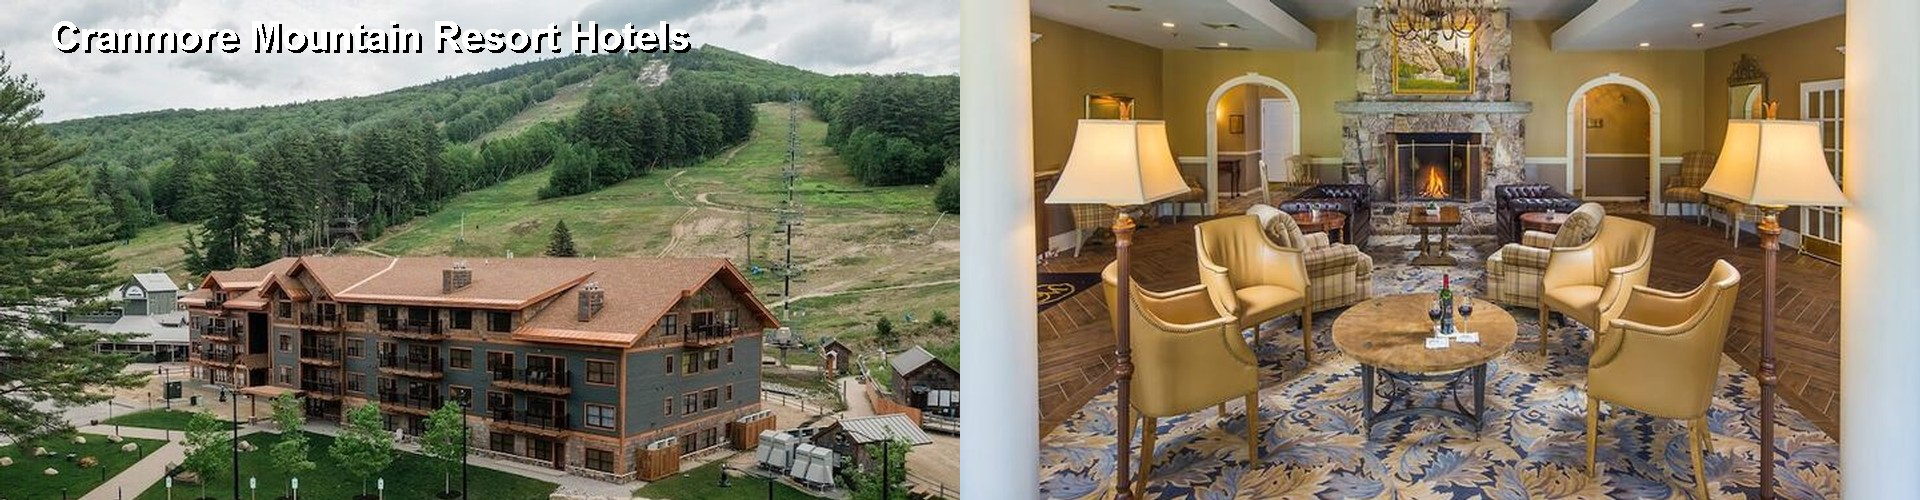 5 Best Hotels near Cranmore Mountain Resort